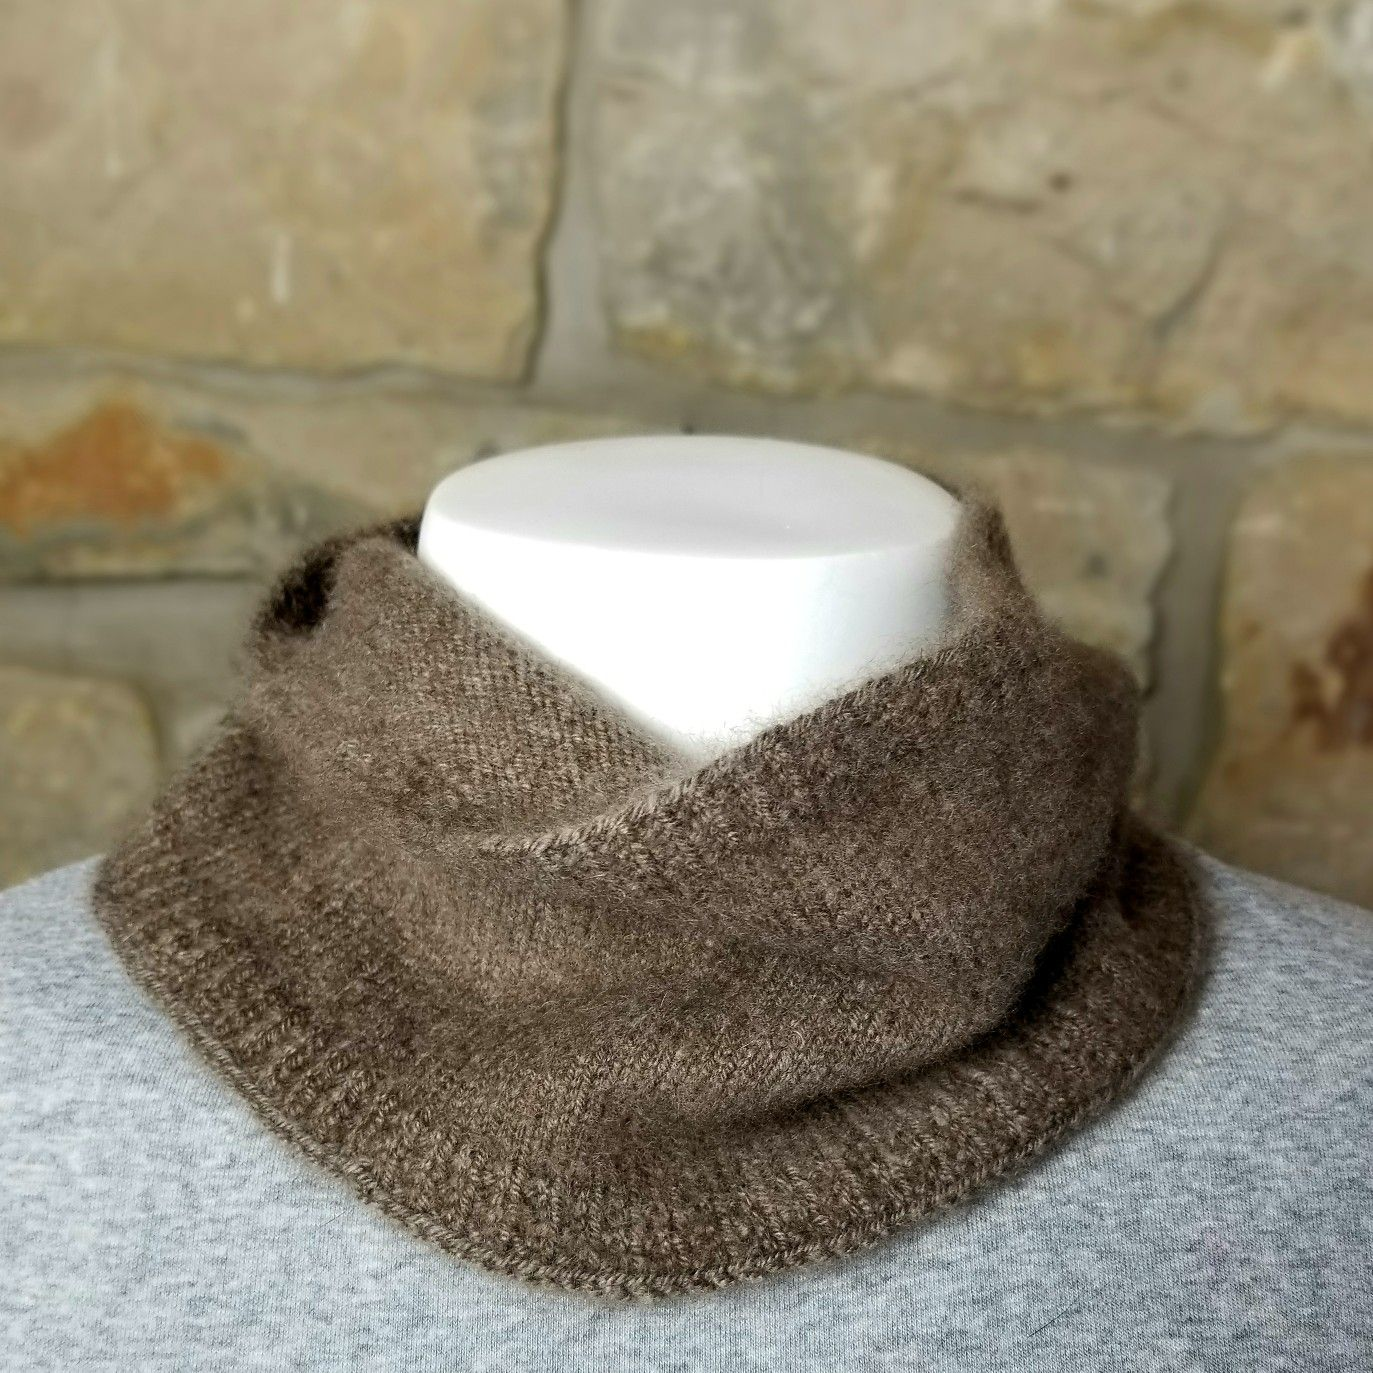 Qiviut (musk ox) cowl. This is a shorty which is perfect for covering just the neck up to the chin AND keeping the price down. It still has a larger rib at the bottom for covering or tucking into the neck band. For those that are unfamiliar with the fiber, it's 8 times warmer than wool, softer than cashmere and light as a feather...oh, and extremely durable. From what I've heard, it's not all that easy to harvest either. All those things combined make for a pricey but solo worth it!